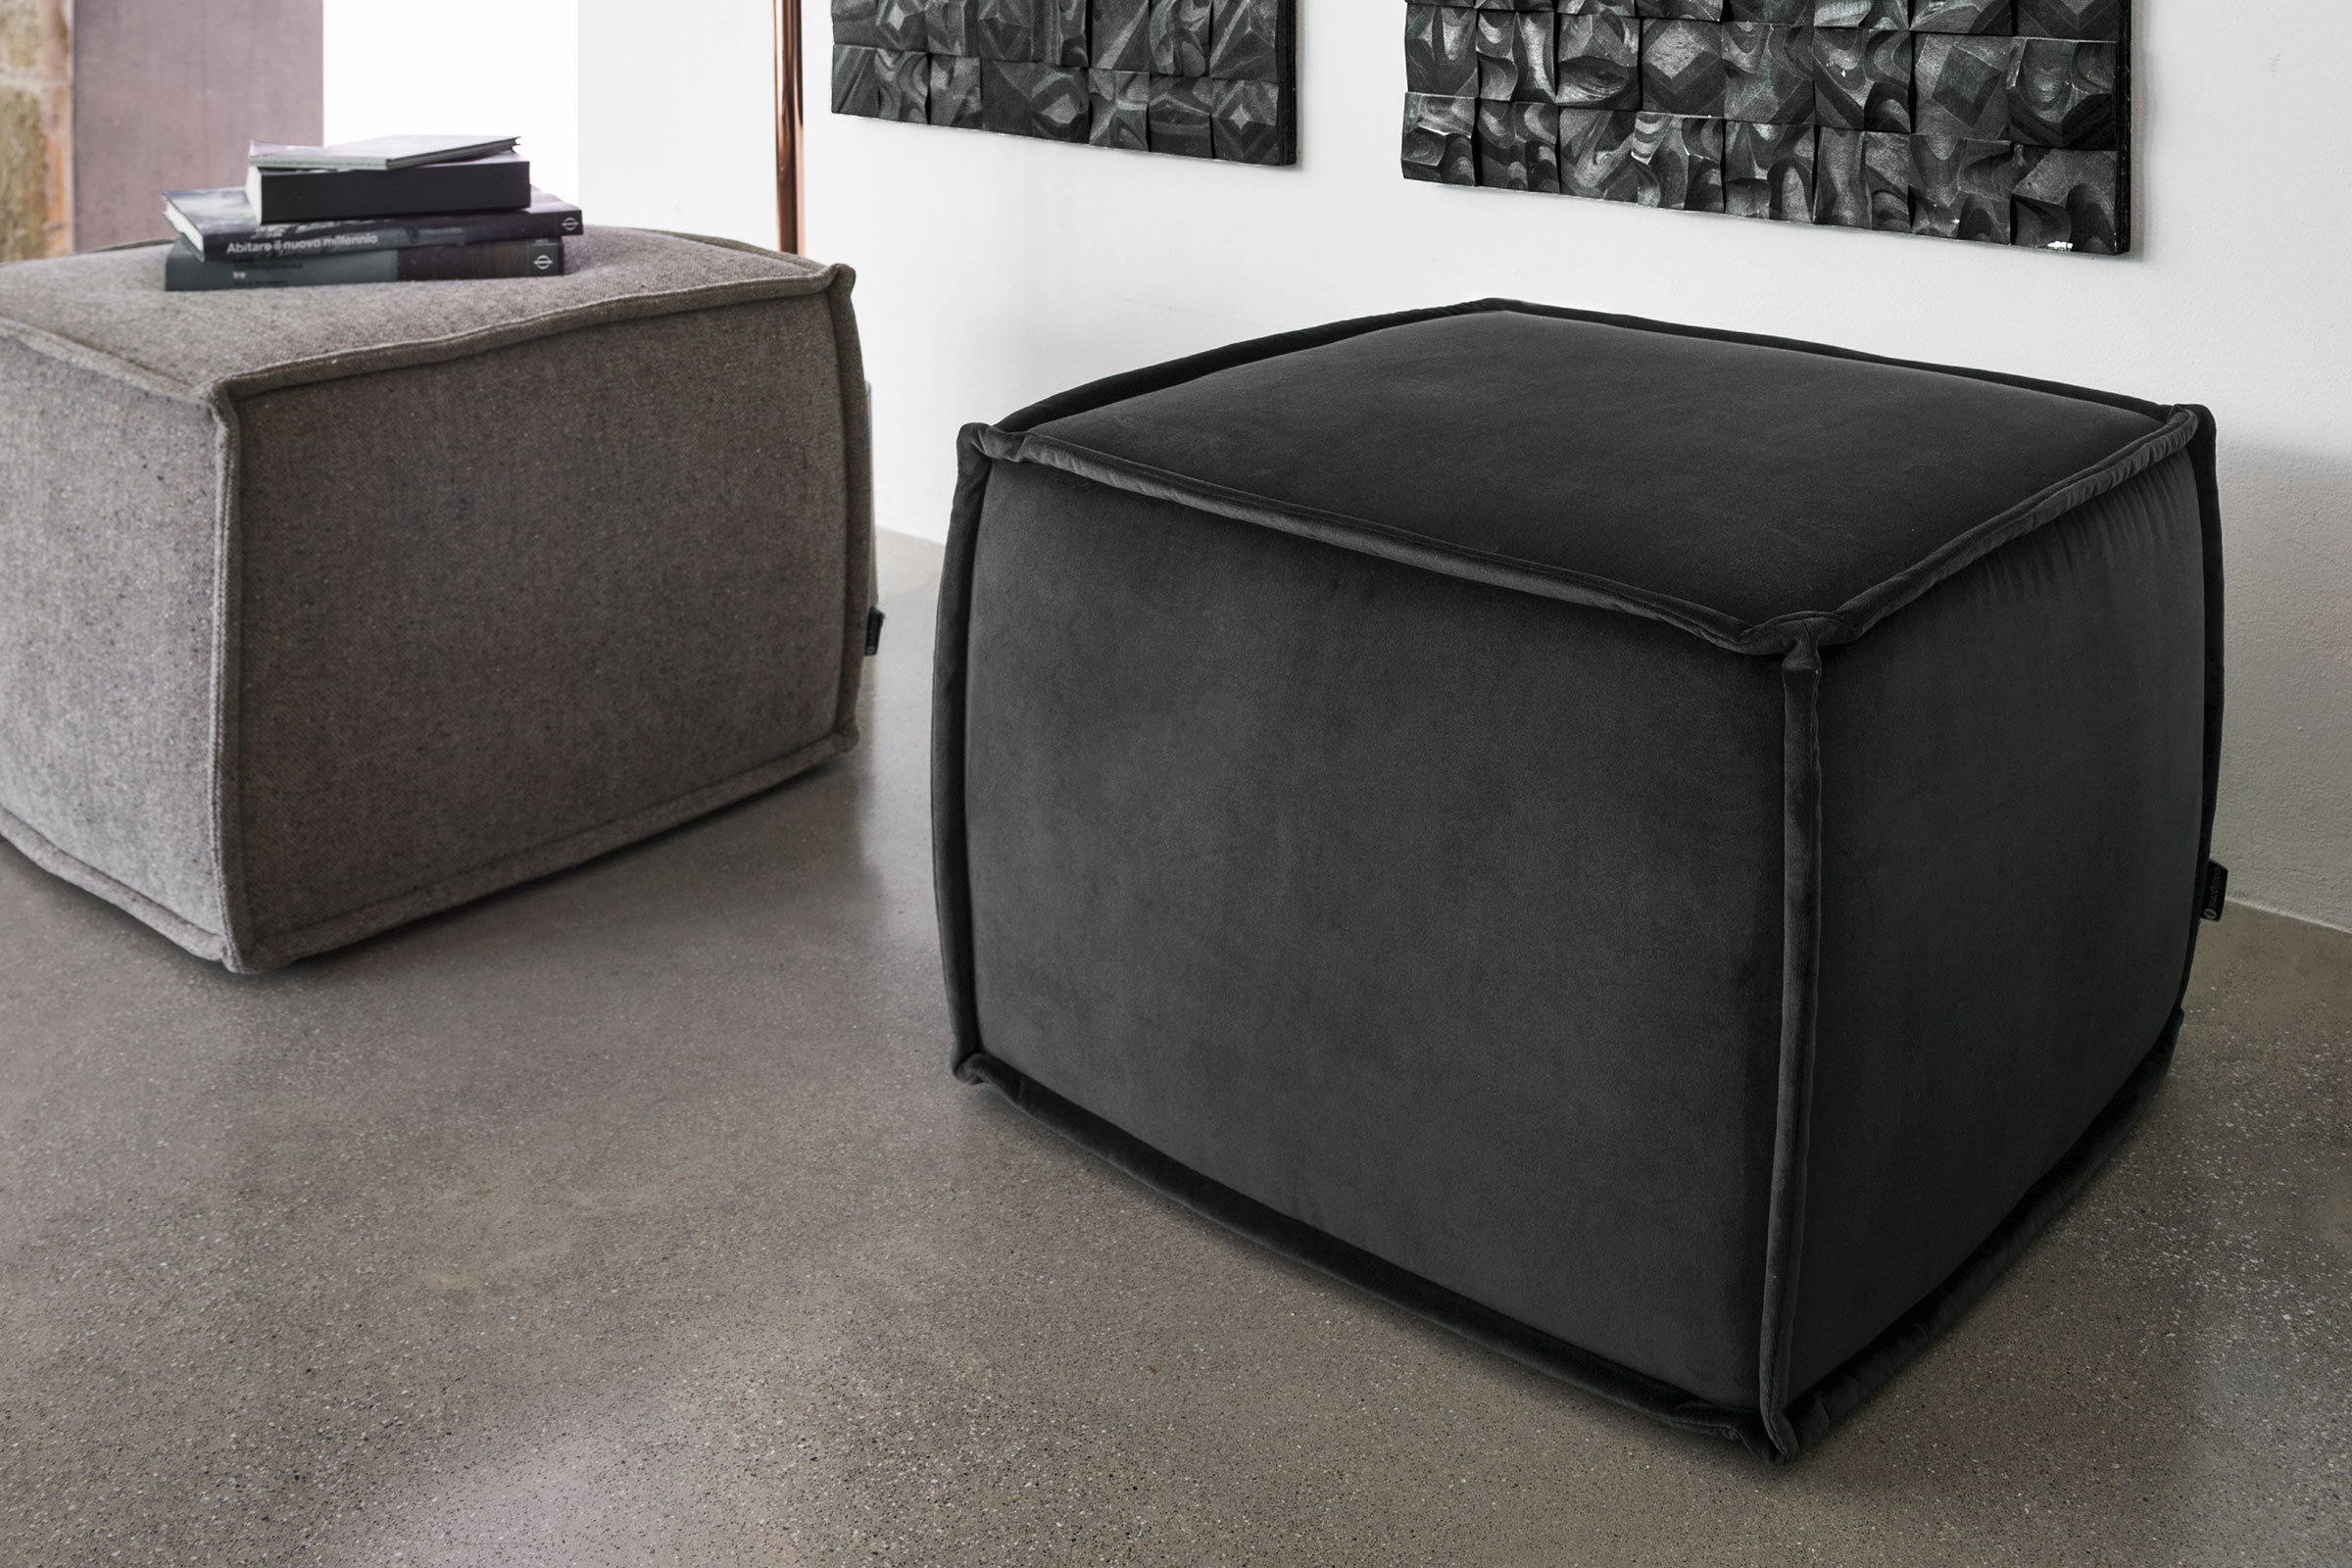 Sofa Lounge Nyc Soap Ottoman Pouf Calligaris Nyc New York City